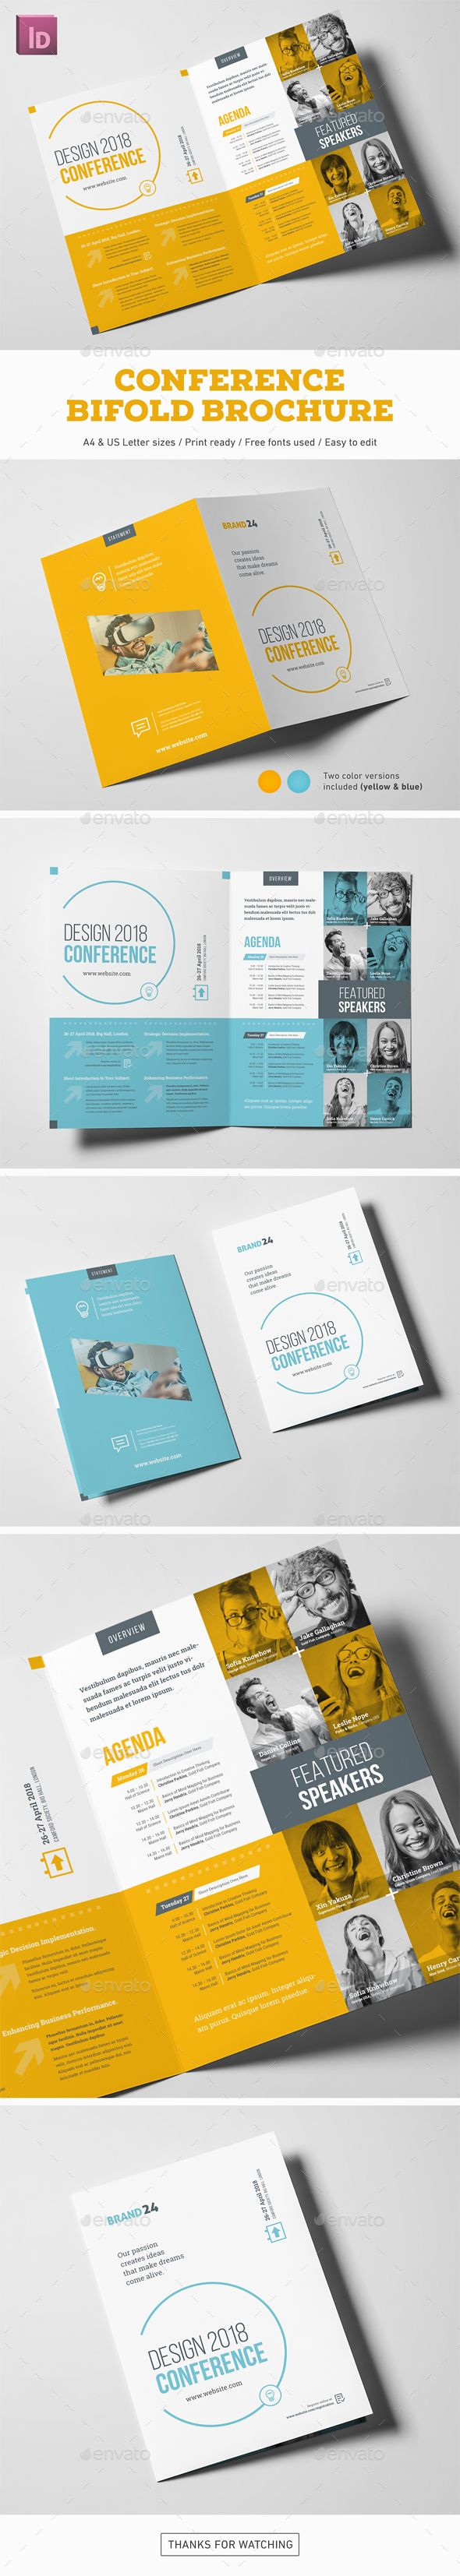 Conference Bifold Brochure     InDesign INDD  company  summit     Conference Bifold Brochure     InDesign INDD  company  summit     Download         https   graphicriver net item conference bifold brochure 19502195 ref pxcr